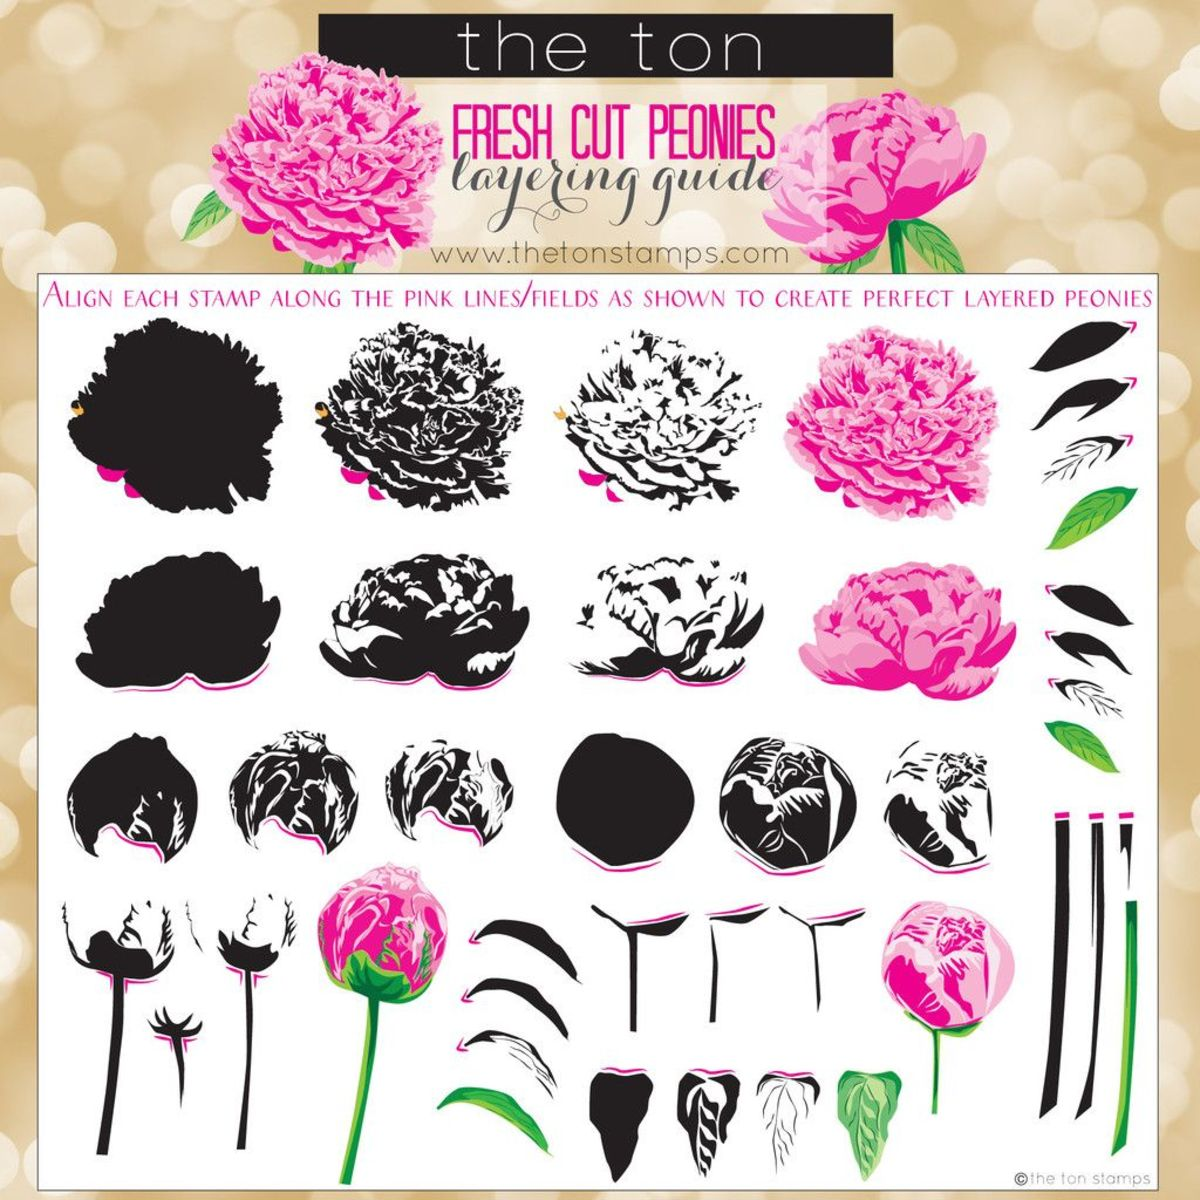 Layered stamp sets consist of multiple stamps for one image that give a lot of detail